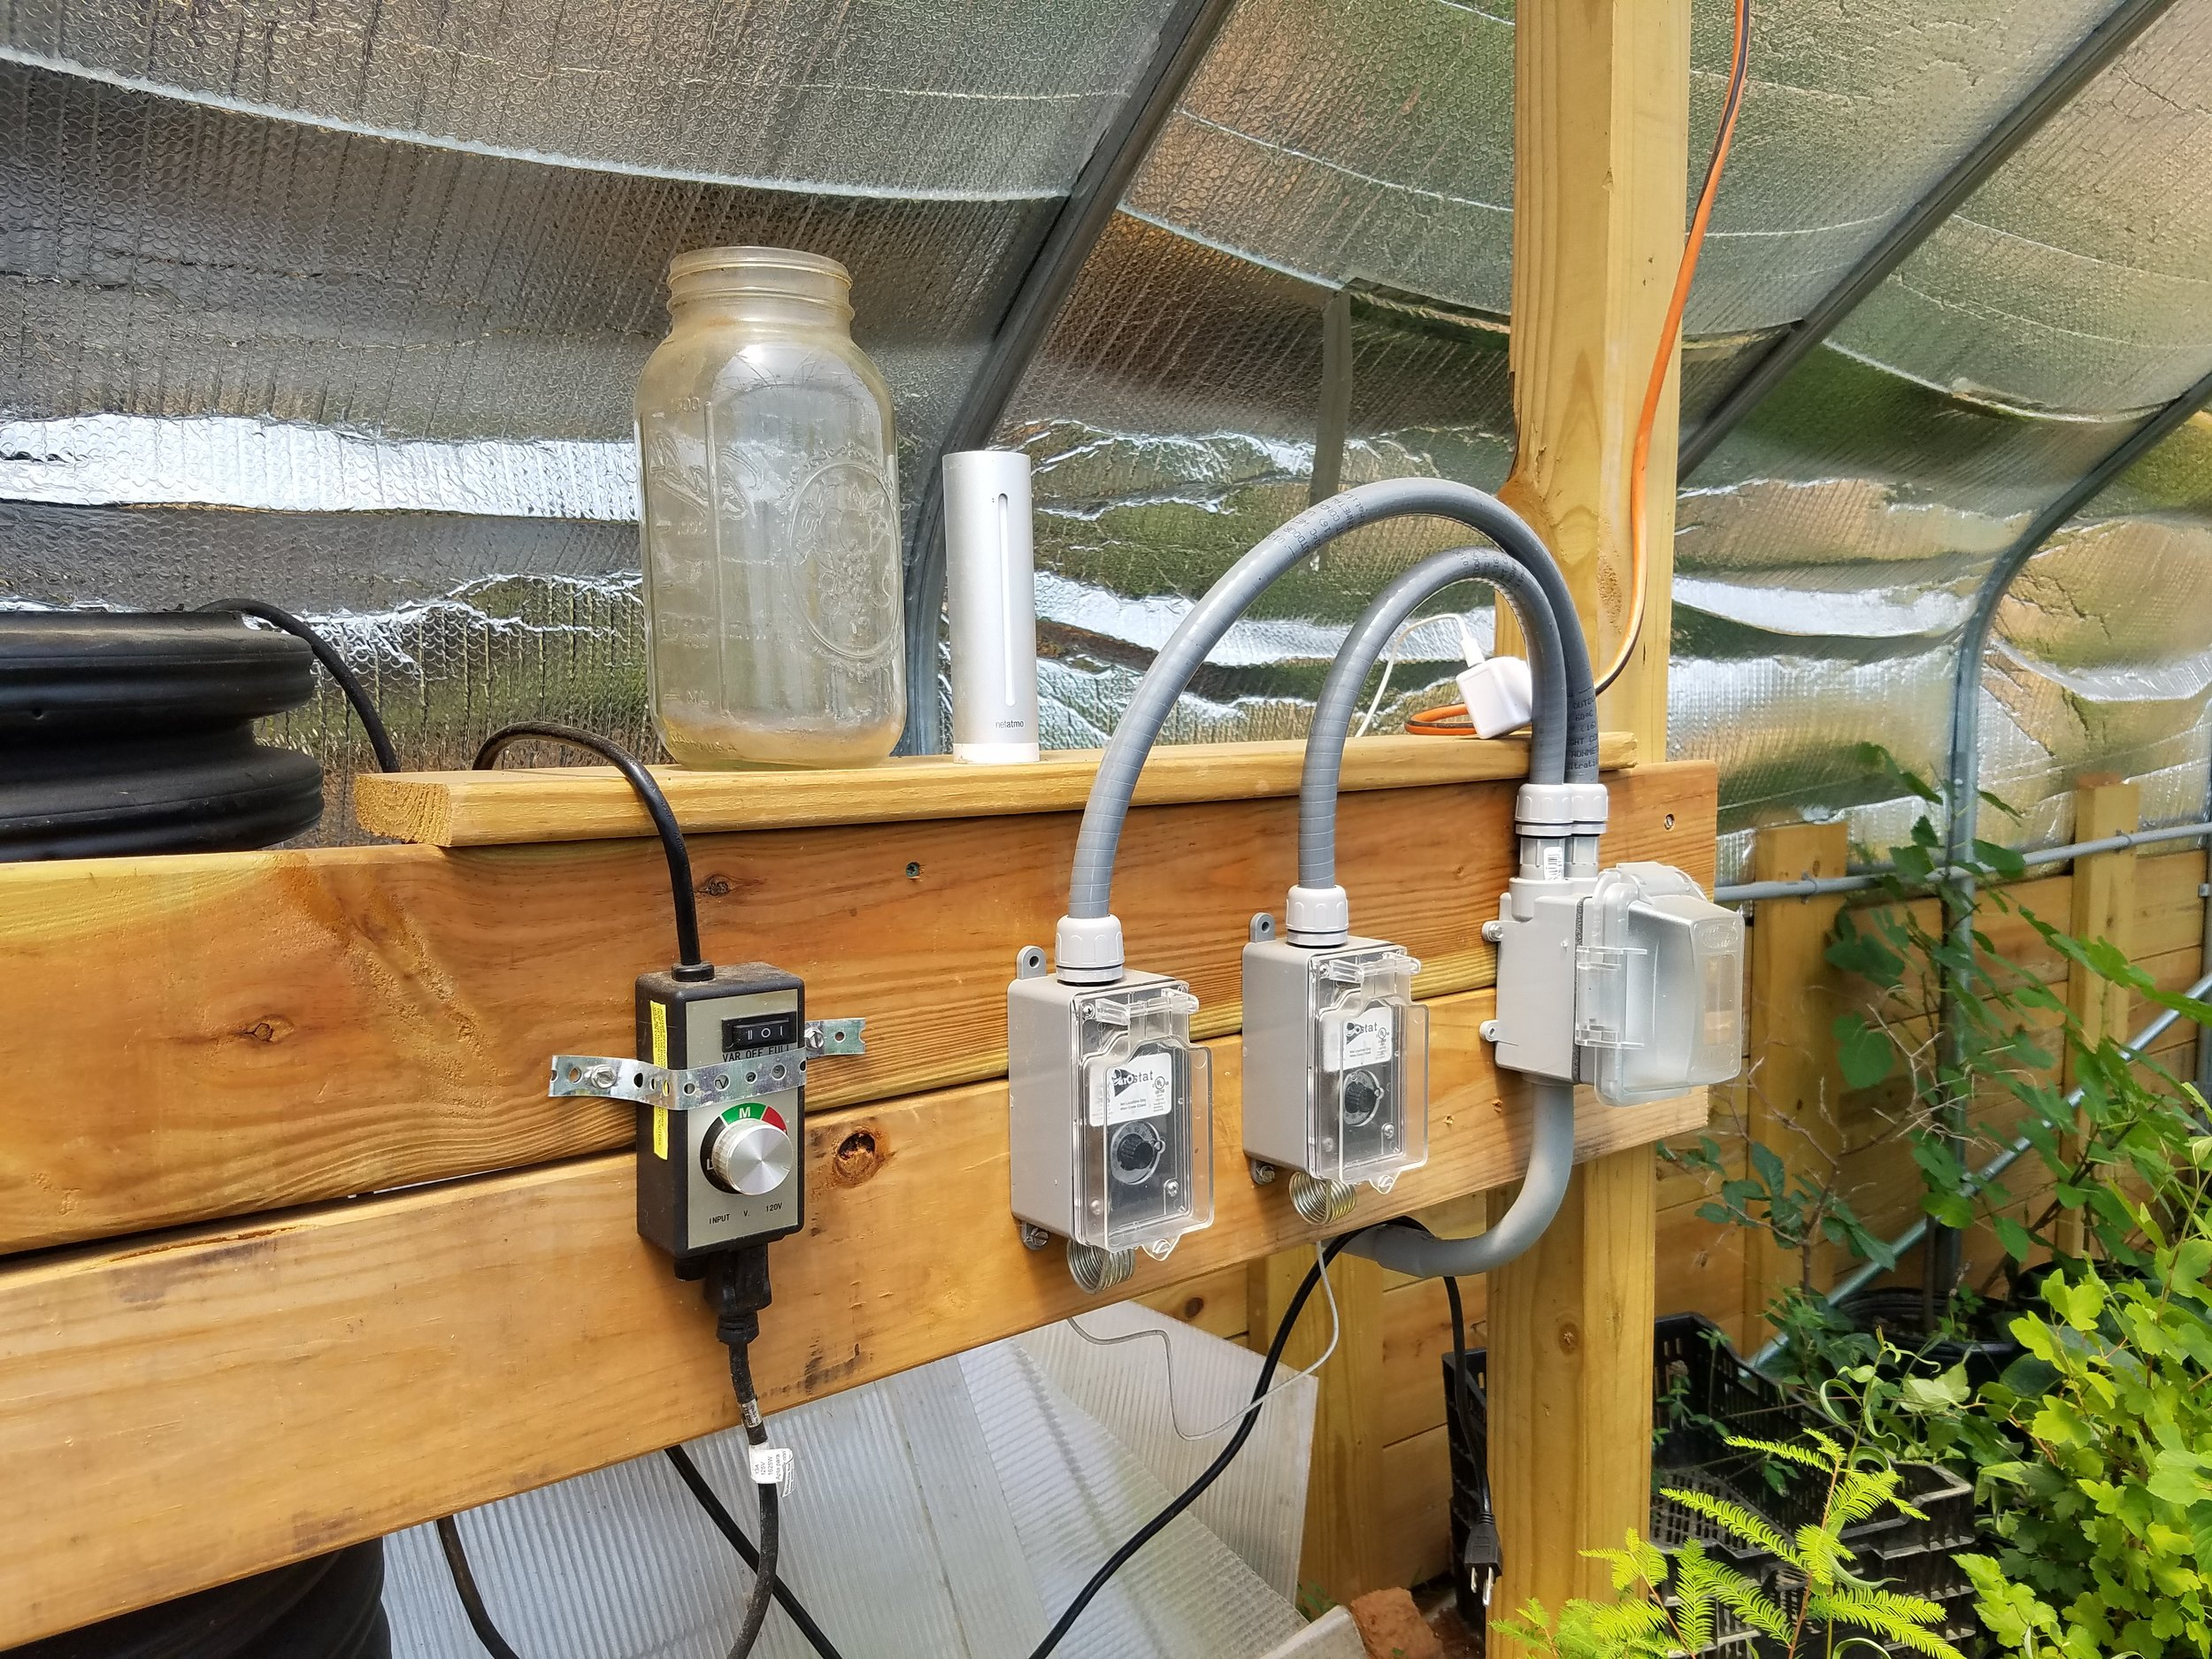 Controls inside the greenhouse for the new geothermal heating system.